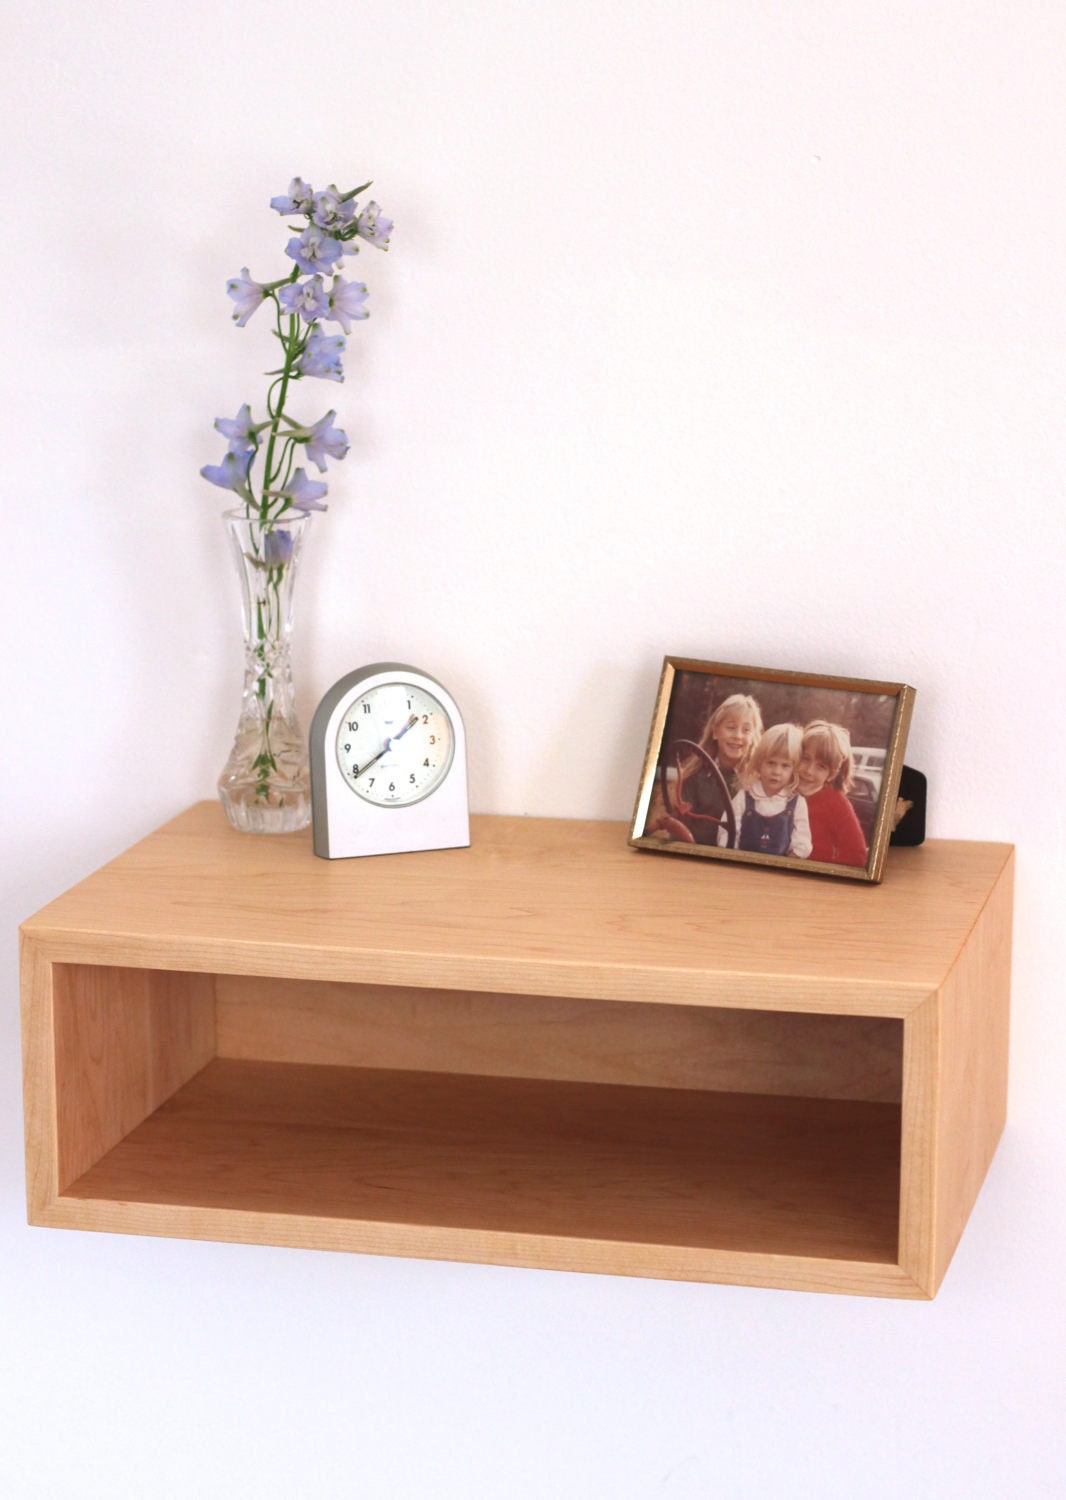 Nightstand Table: Small Floating Nightstand / Modern Bedside Table In Solid